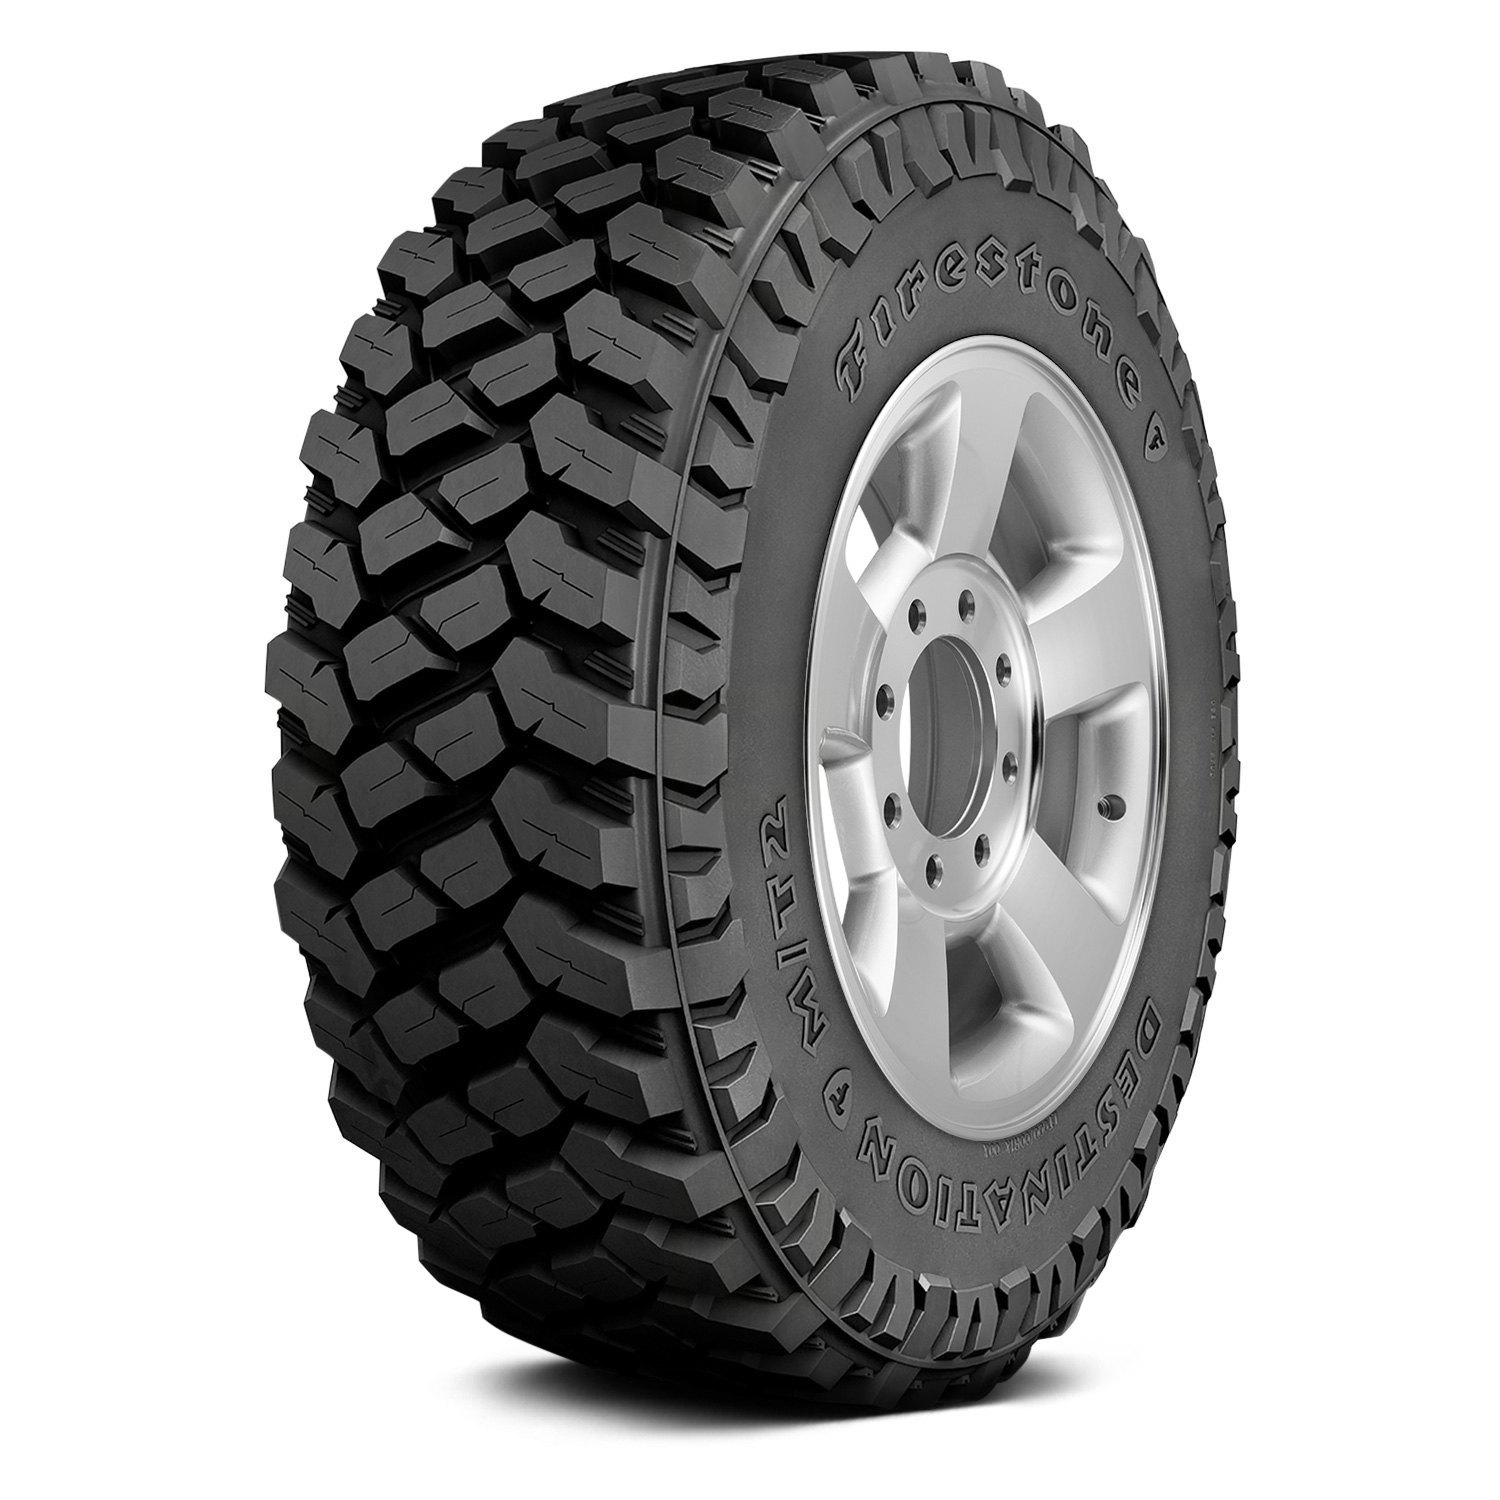 tires all season all terrain tire for light trucks and suvs. Black Bedroom Furniture Sets. Home Design Ideas